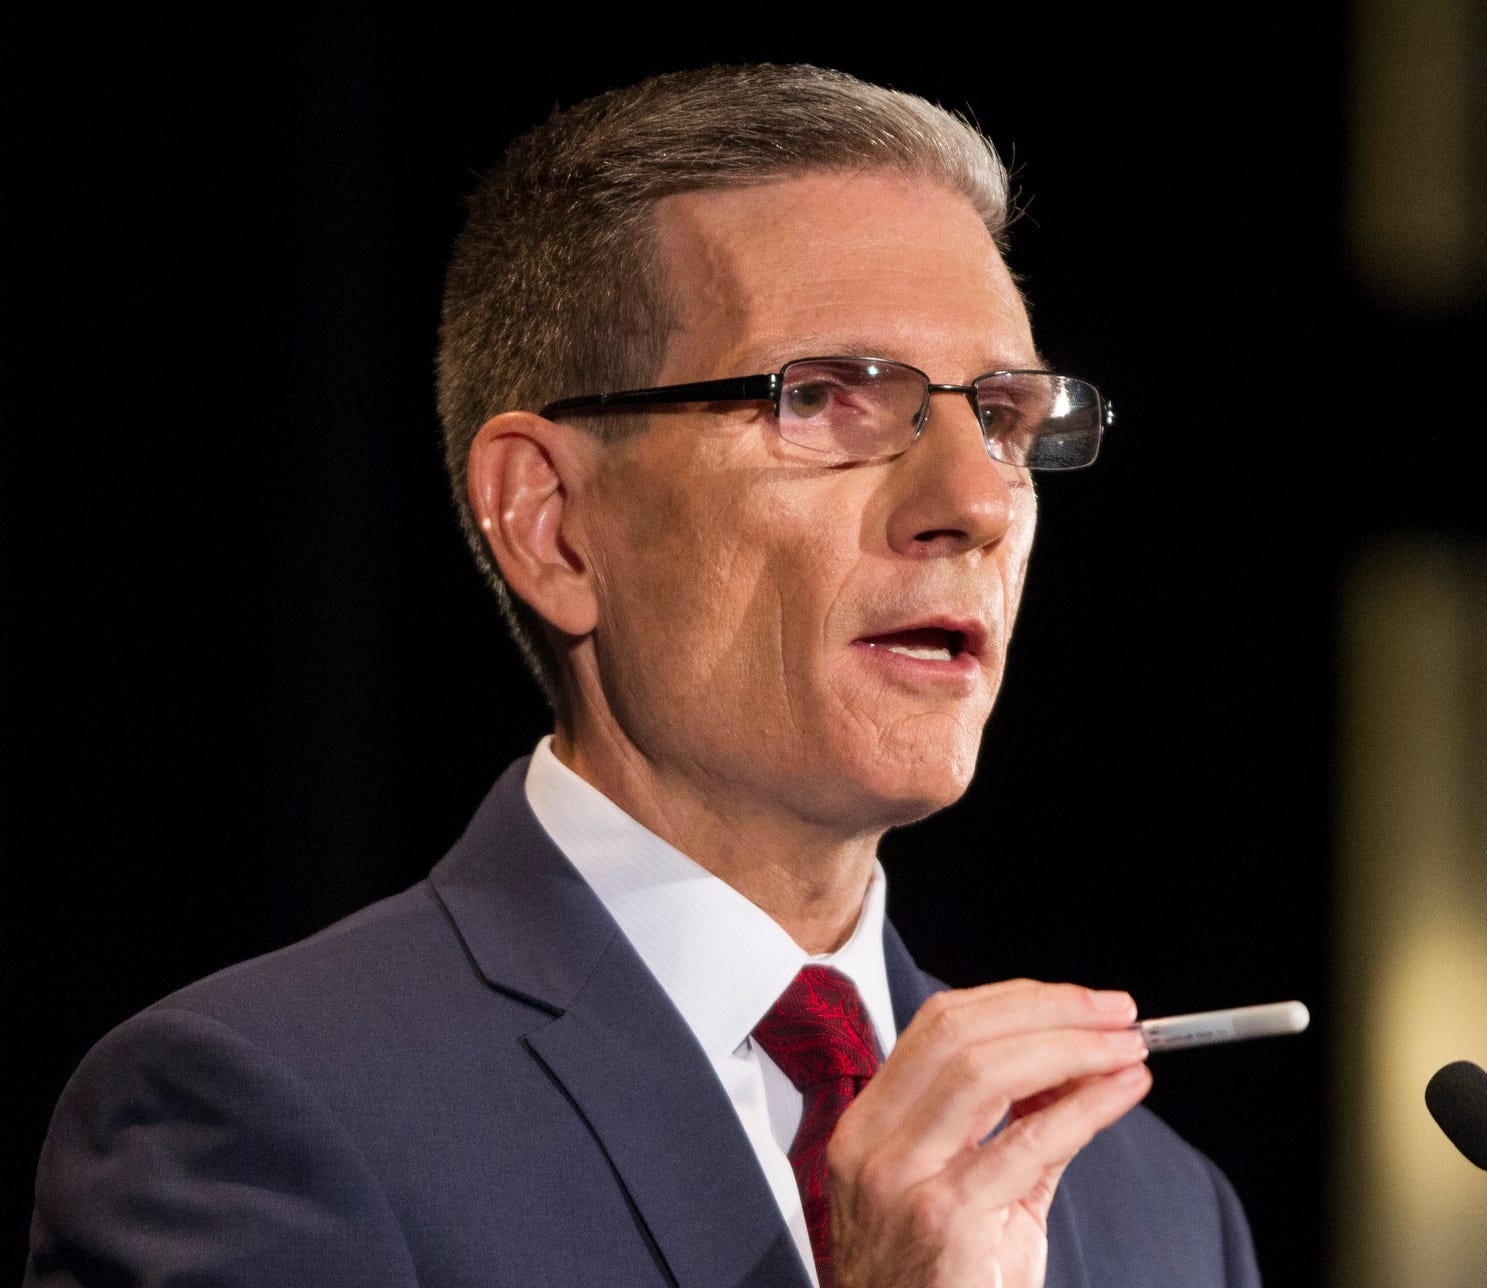 Joe Heck is the chairman of the National Commission on Military, National, and Public Service.